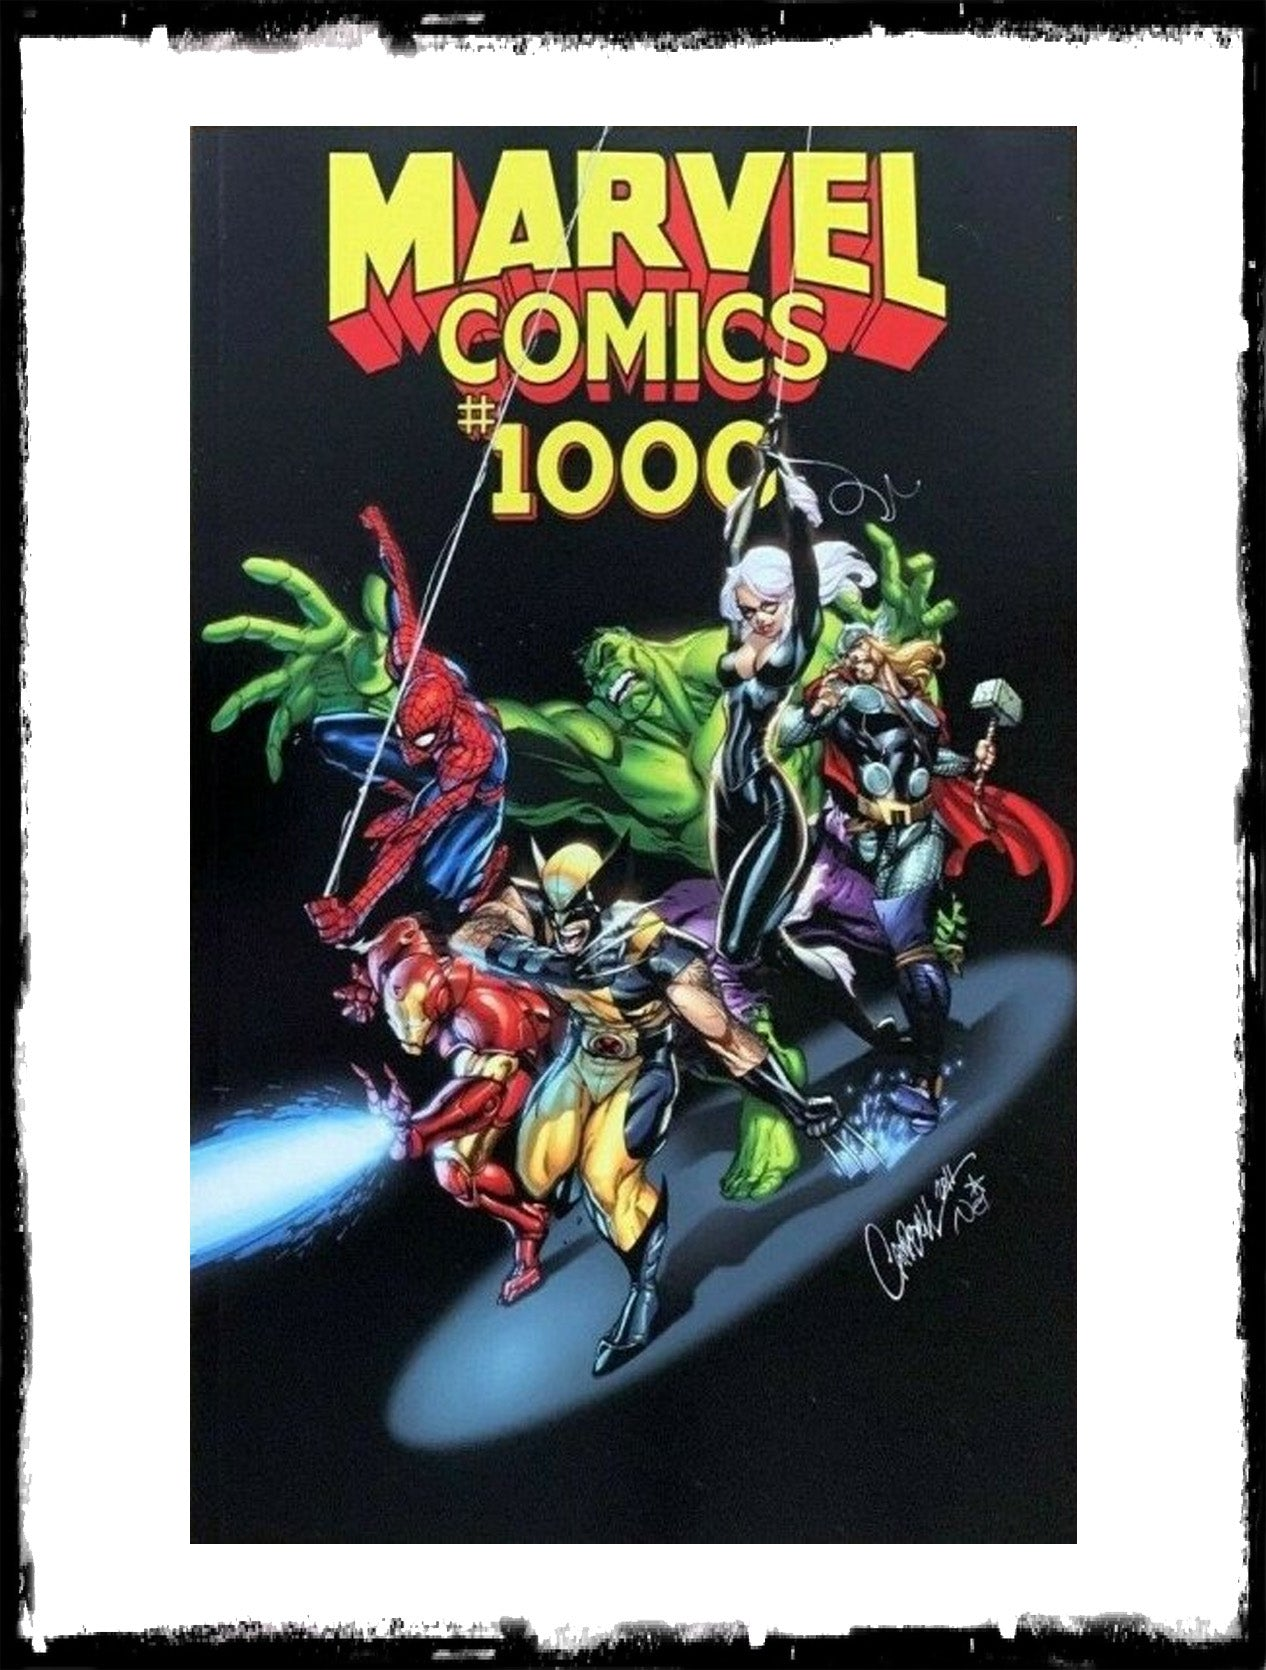 MARVEL COMICS #1000 - J. SCOTT CAMPBELL VARIANT (2019 - NM)